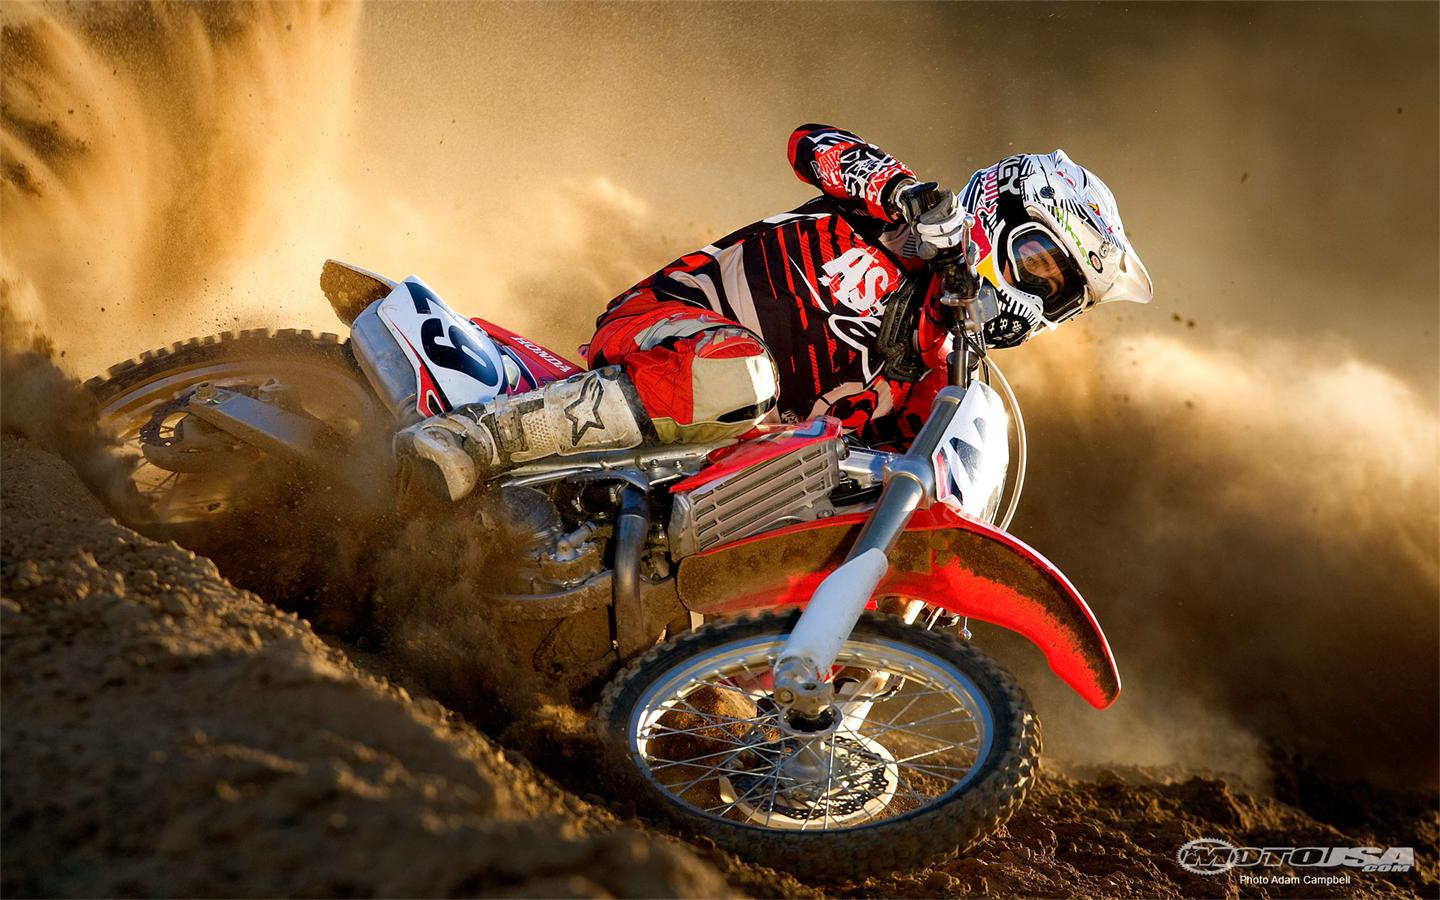 Dirt Bike Wallpaper Girls Dirt Bikes Wallpaper 1440x900 60307